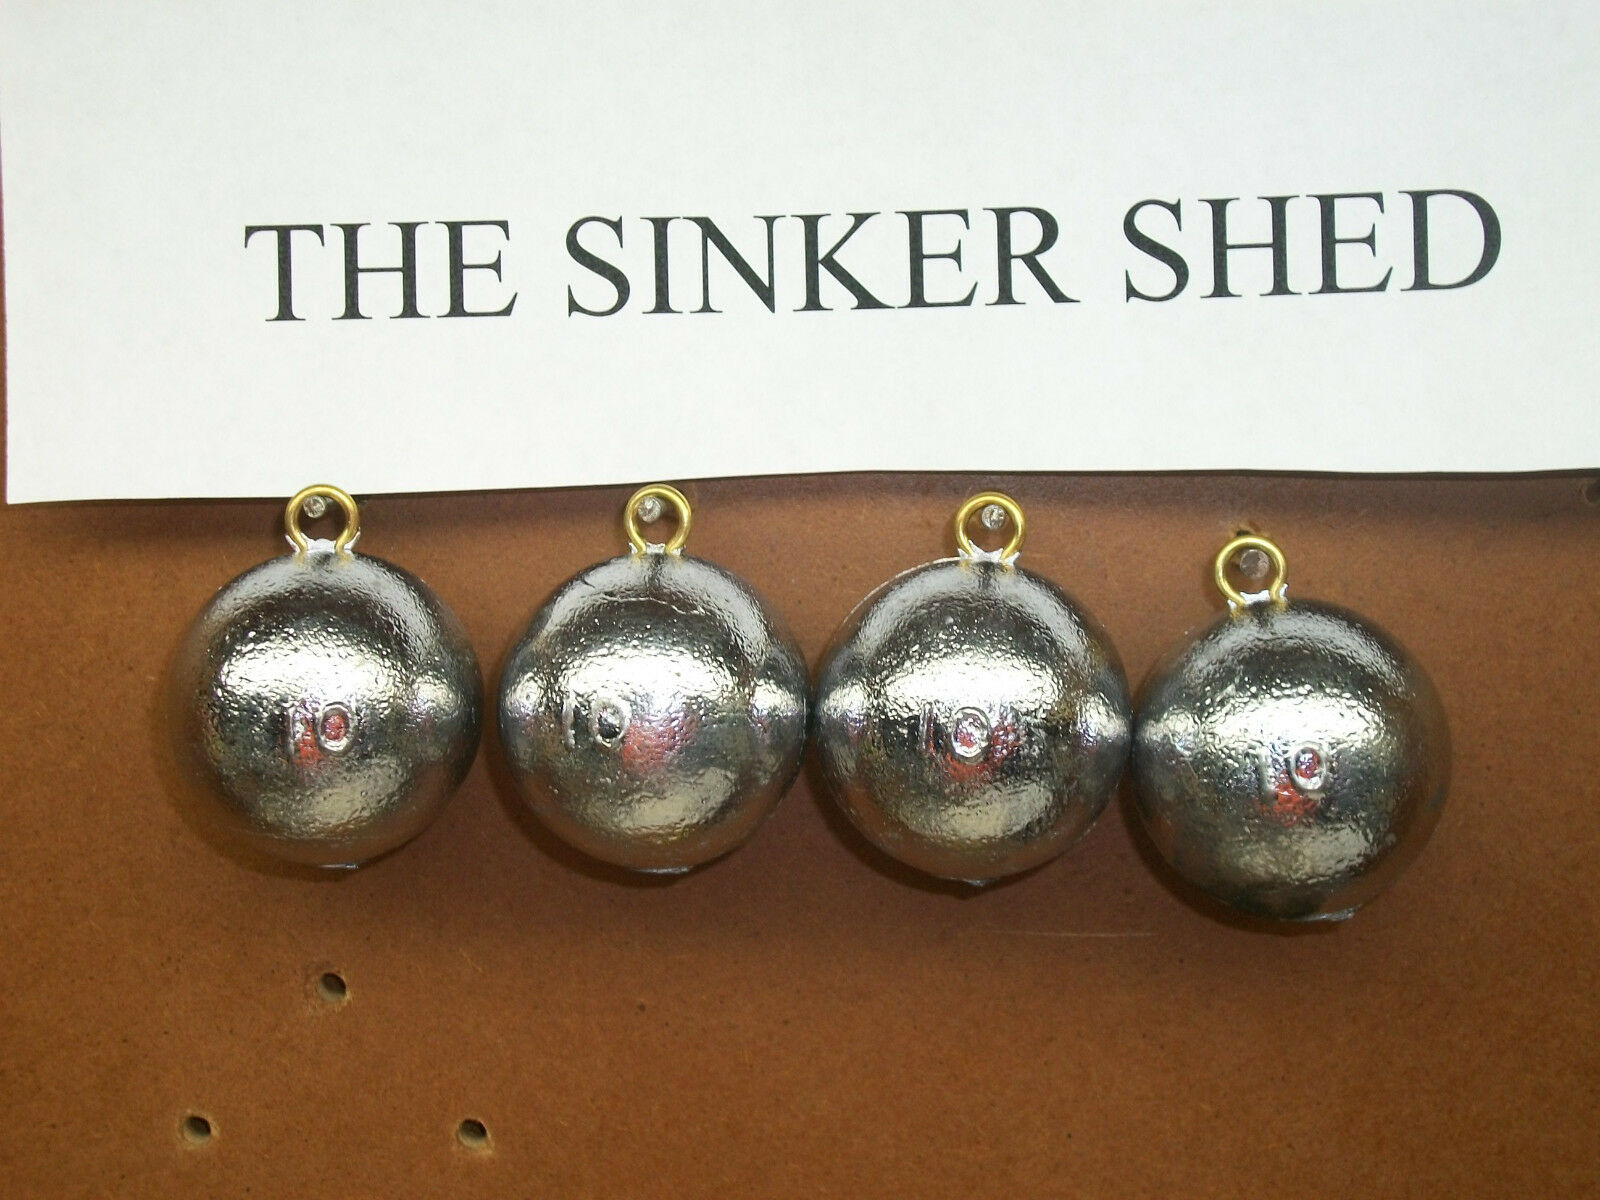 10 oz cannon ball sinkers  - choose quantity 6 12 25 50 100 - FREE SHIPPING  with 60% off discount